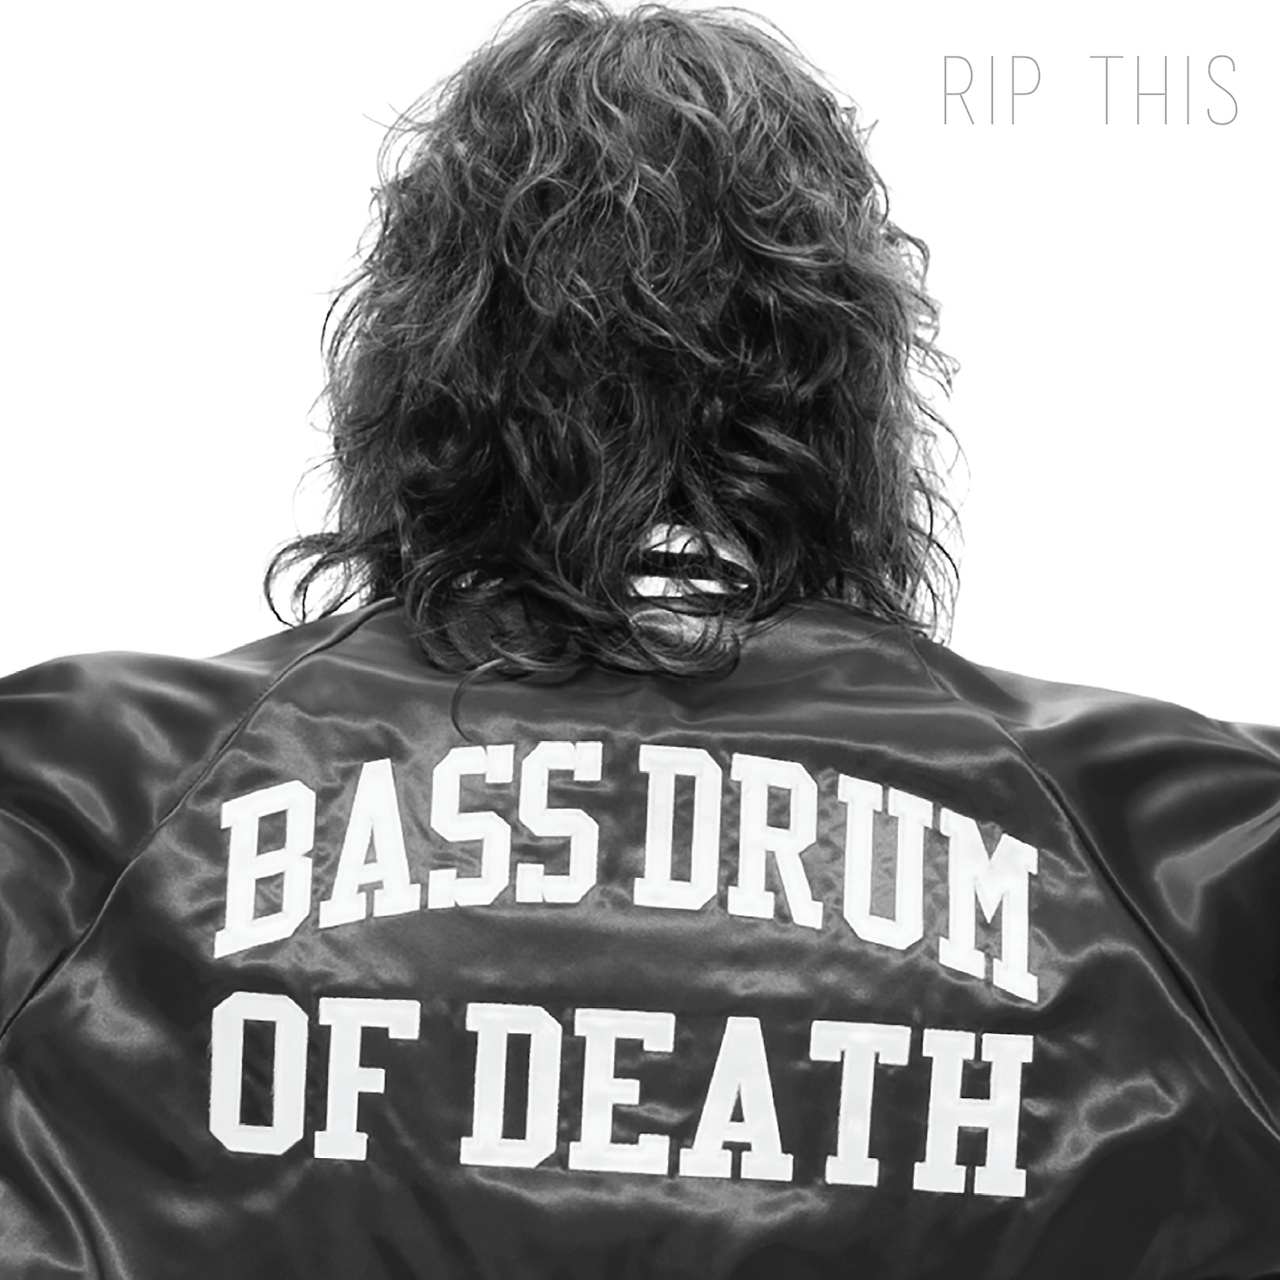 bass-drum-of-death-rip-this